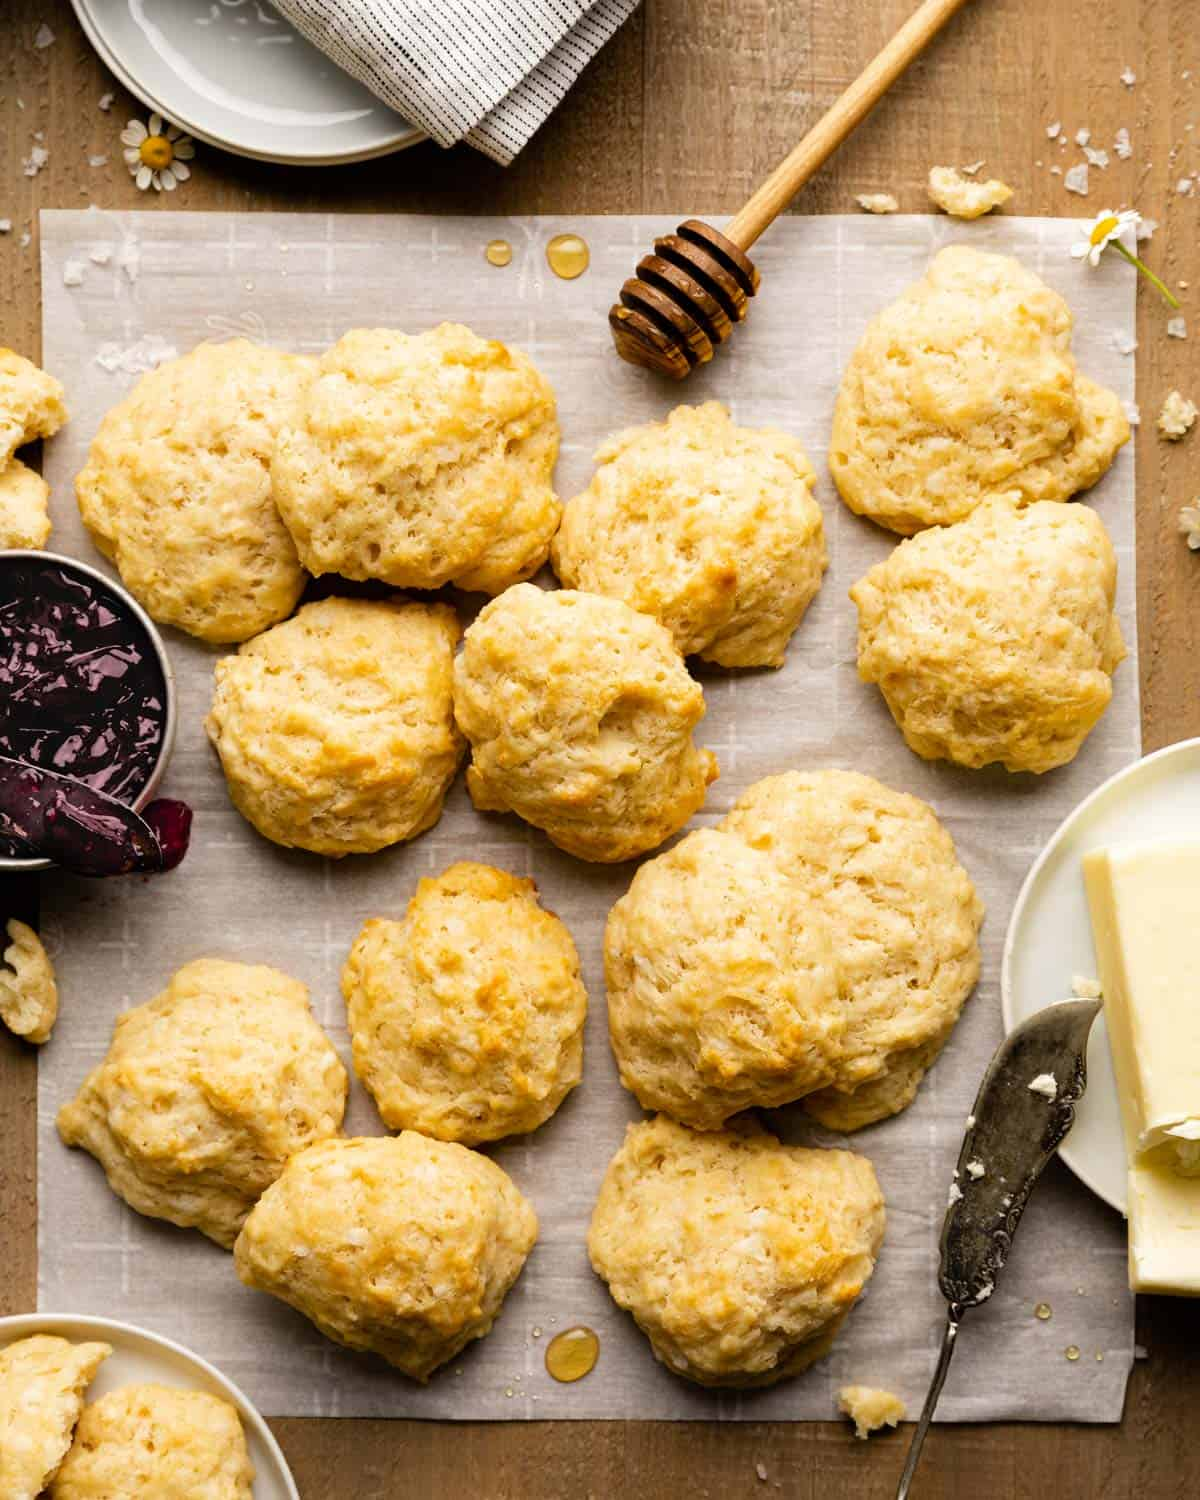 overhead of biscuits, butter, and jelly